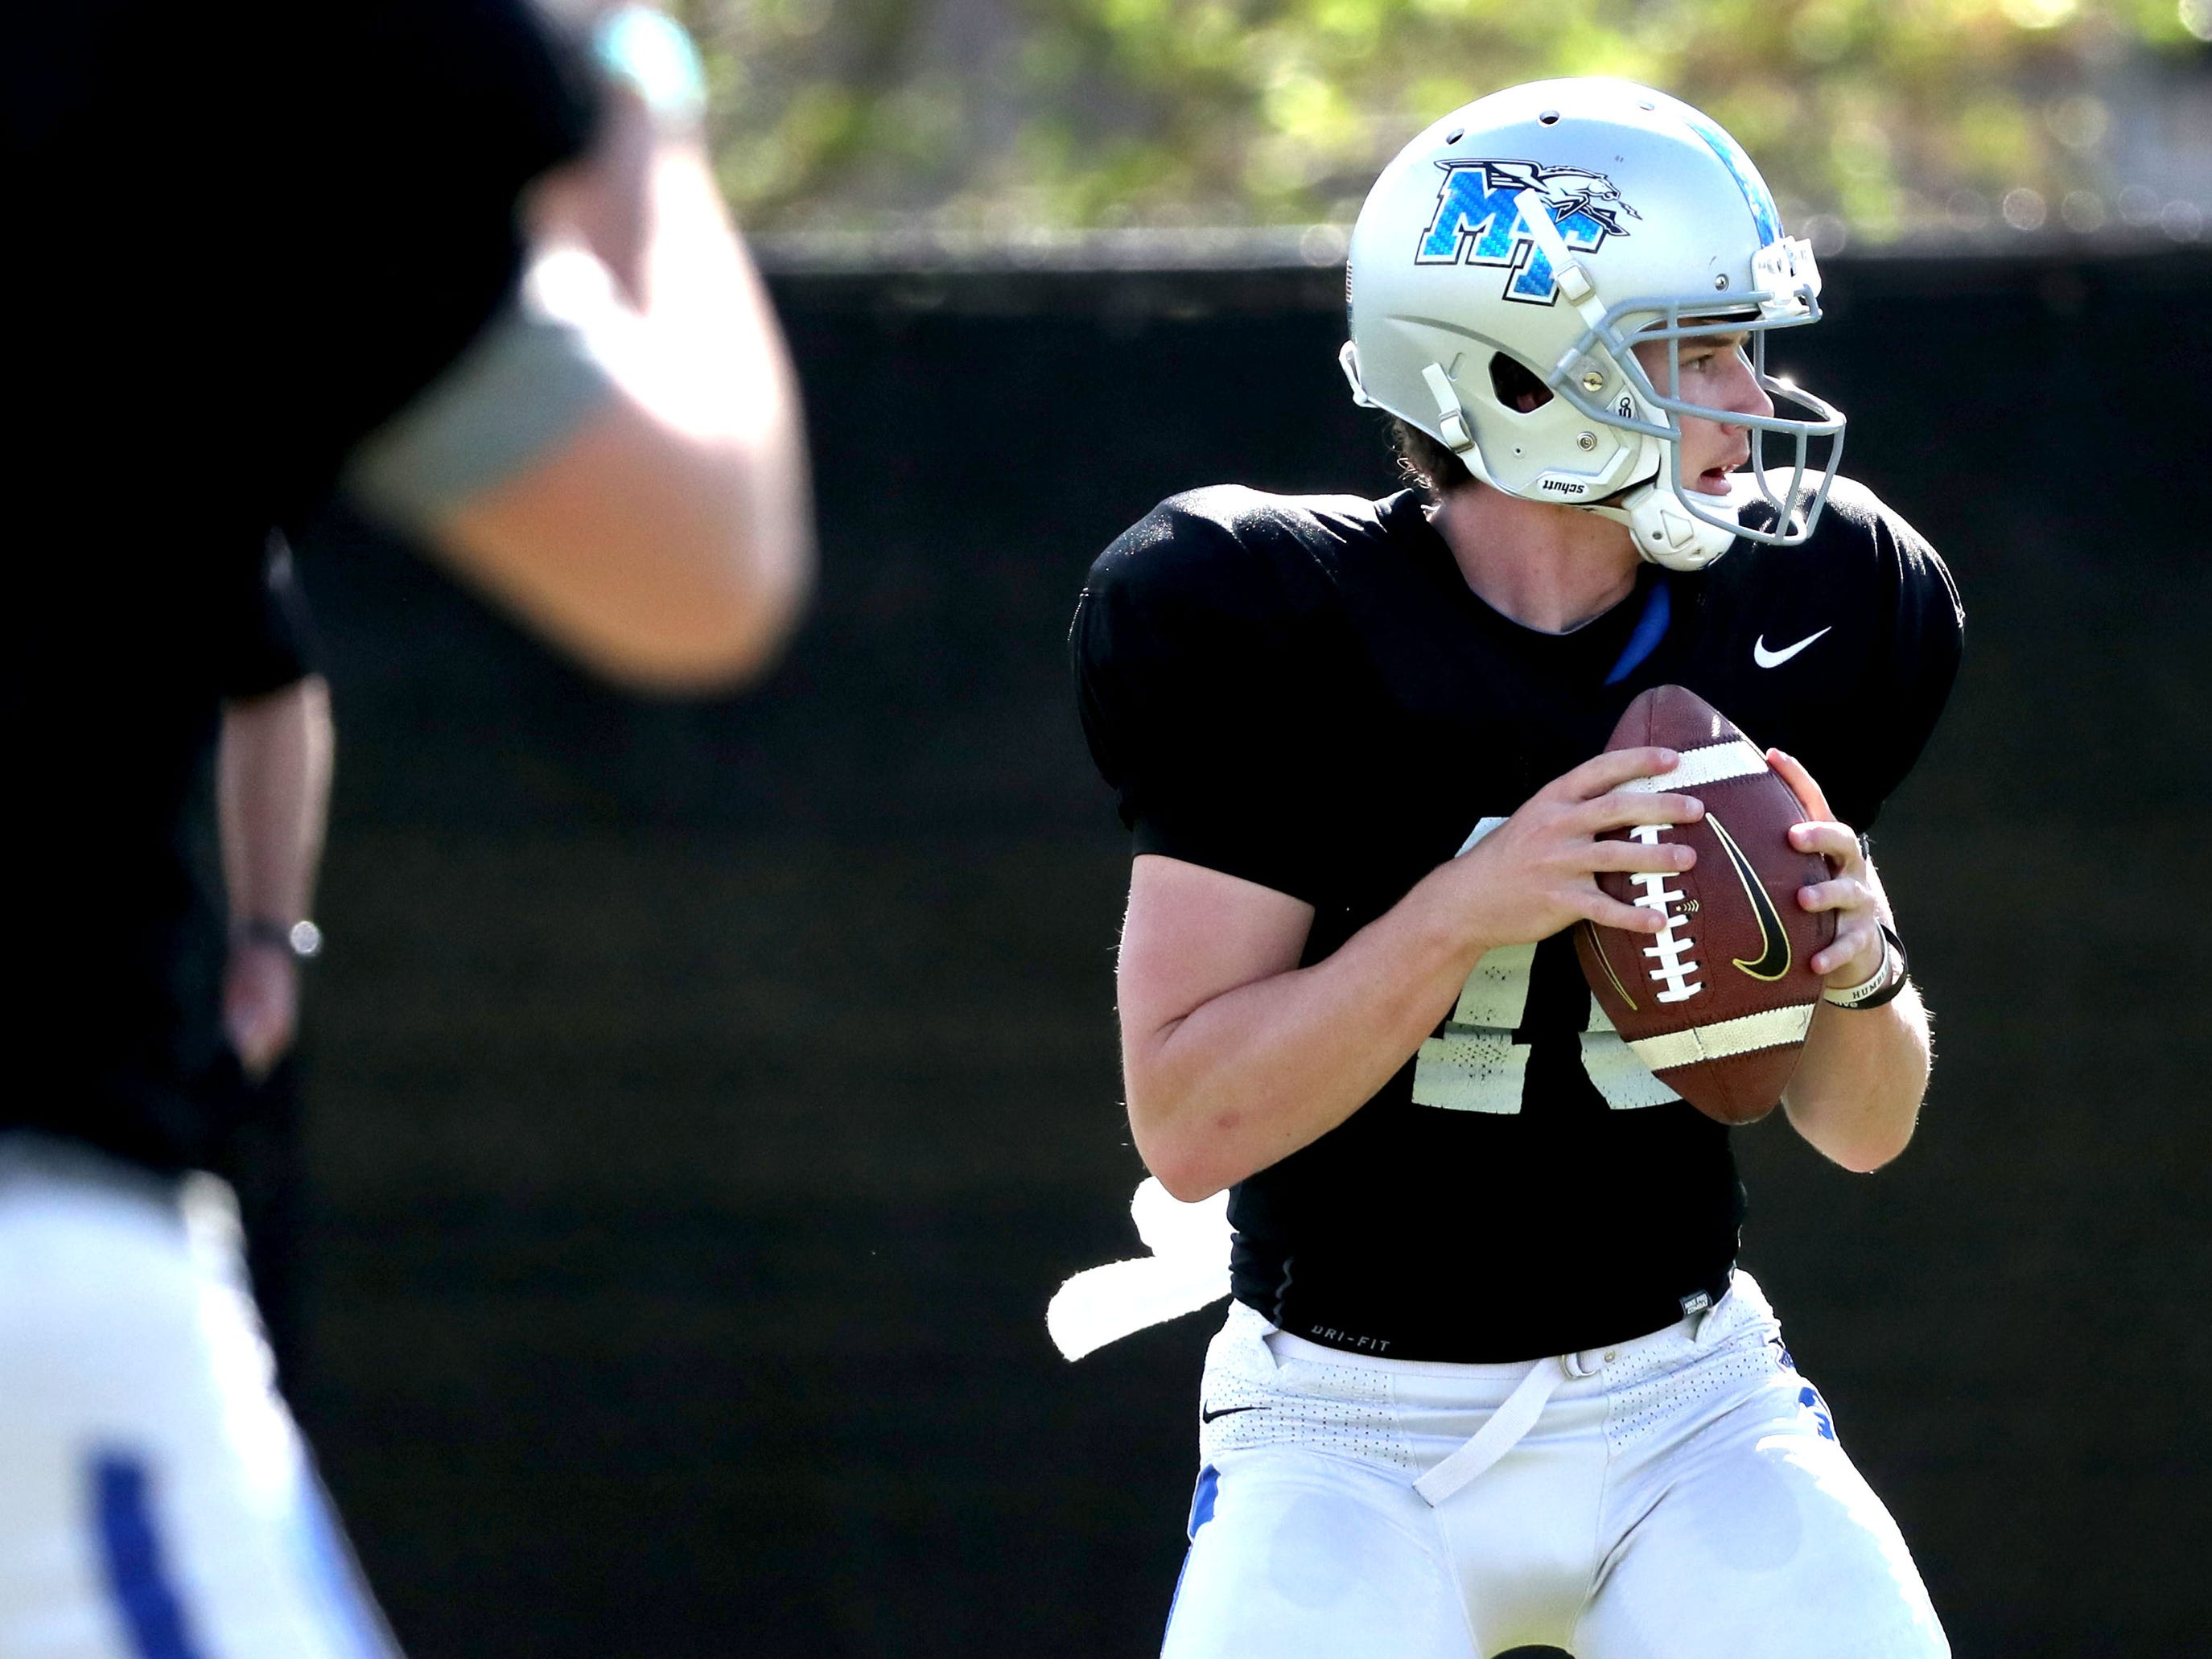 MTSU's quarterback Chase Cunningham (16)) passes the ball during MTSU's football practice, in Murfreesboro on Tuesday April 9, 2019.